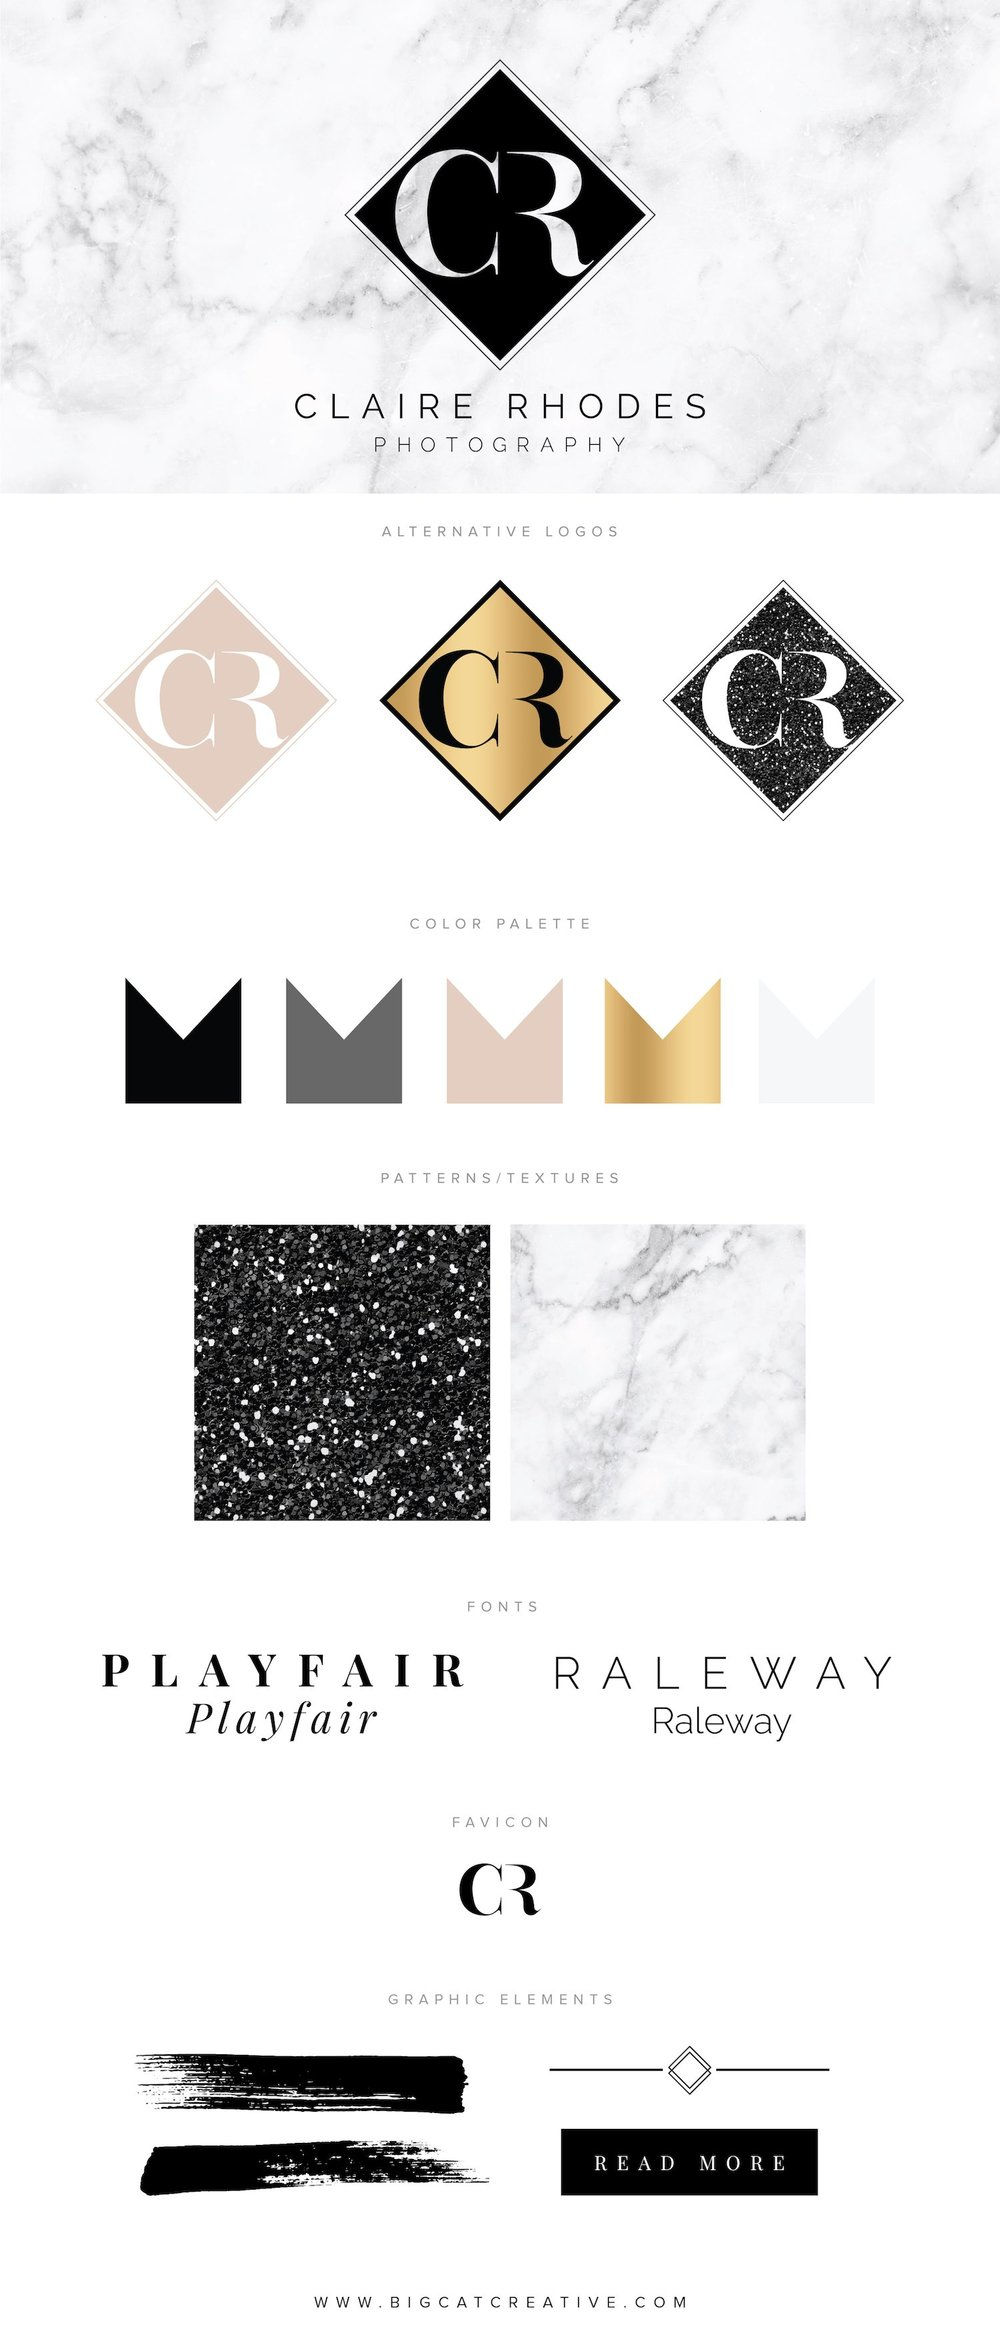 Claire Rhodes_Branding Style Board by Big Cat Creative.jpg